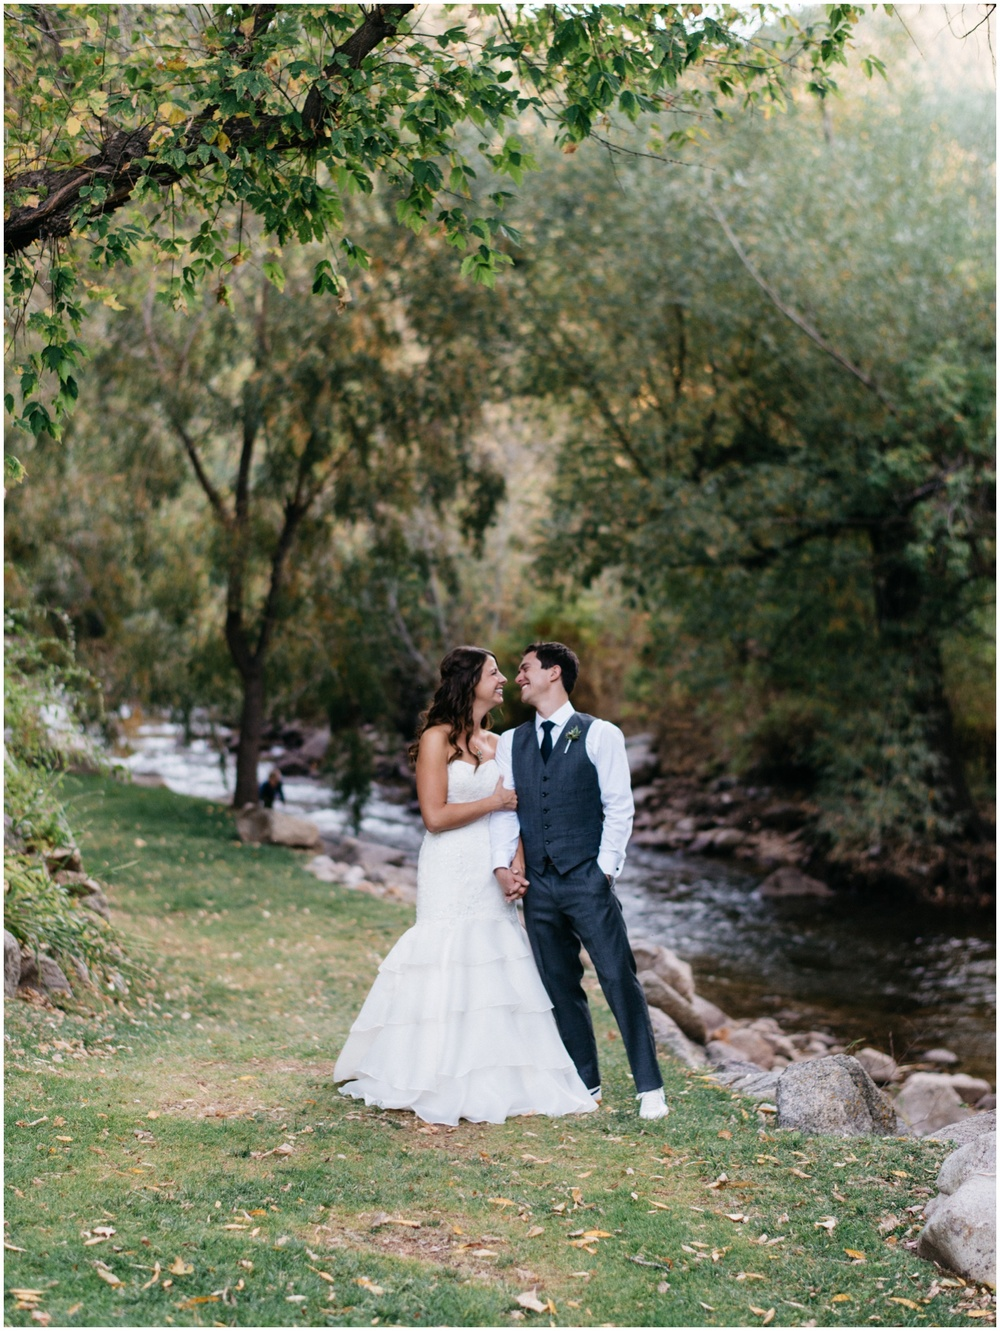 Boulder Colorado Wedgewood Creek Wedding Photographer064.jpg